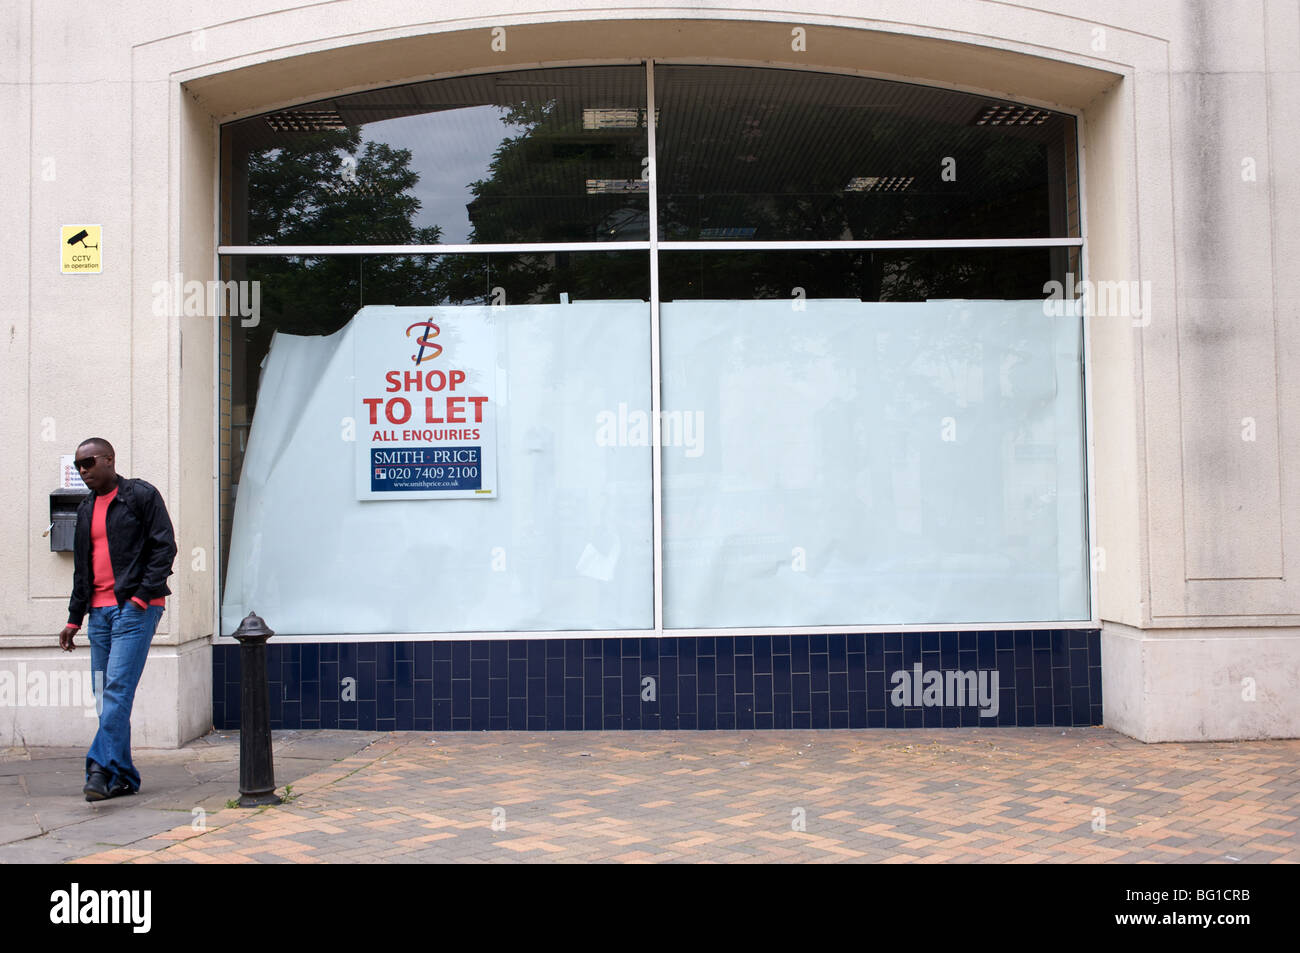 Closed down retail outlet in a shopping centre, Ipswich, Suffolk, UK. - Stock Image